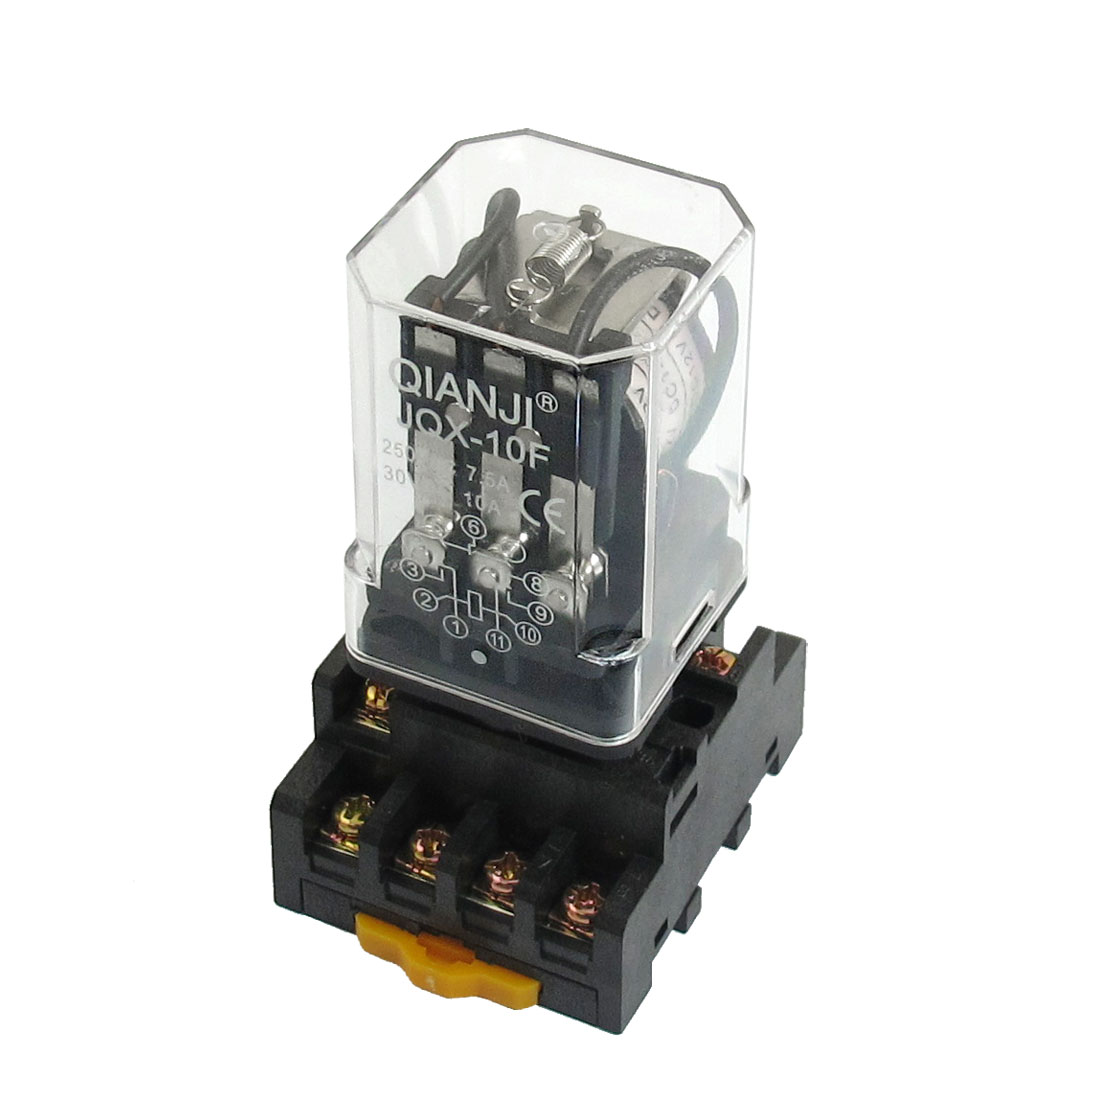 JQX-10F DC 12V Coil General Purpose Relay 11 Pin 3PDT 7.5A 250VAC 10A 30VDC w Socket